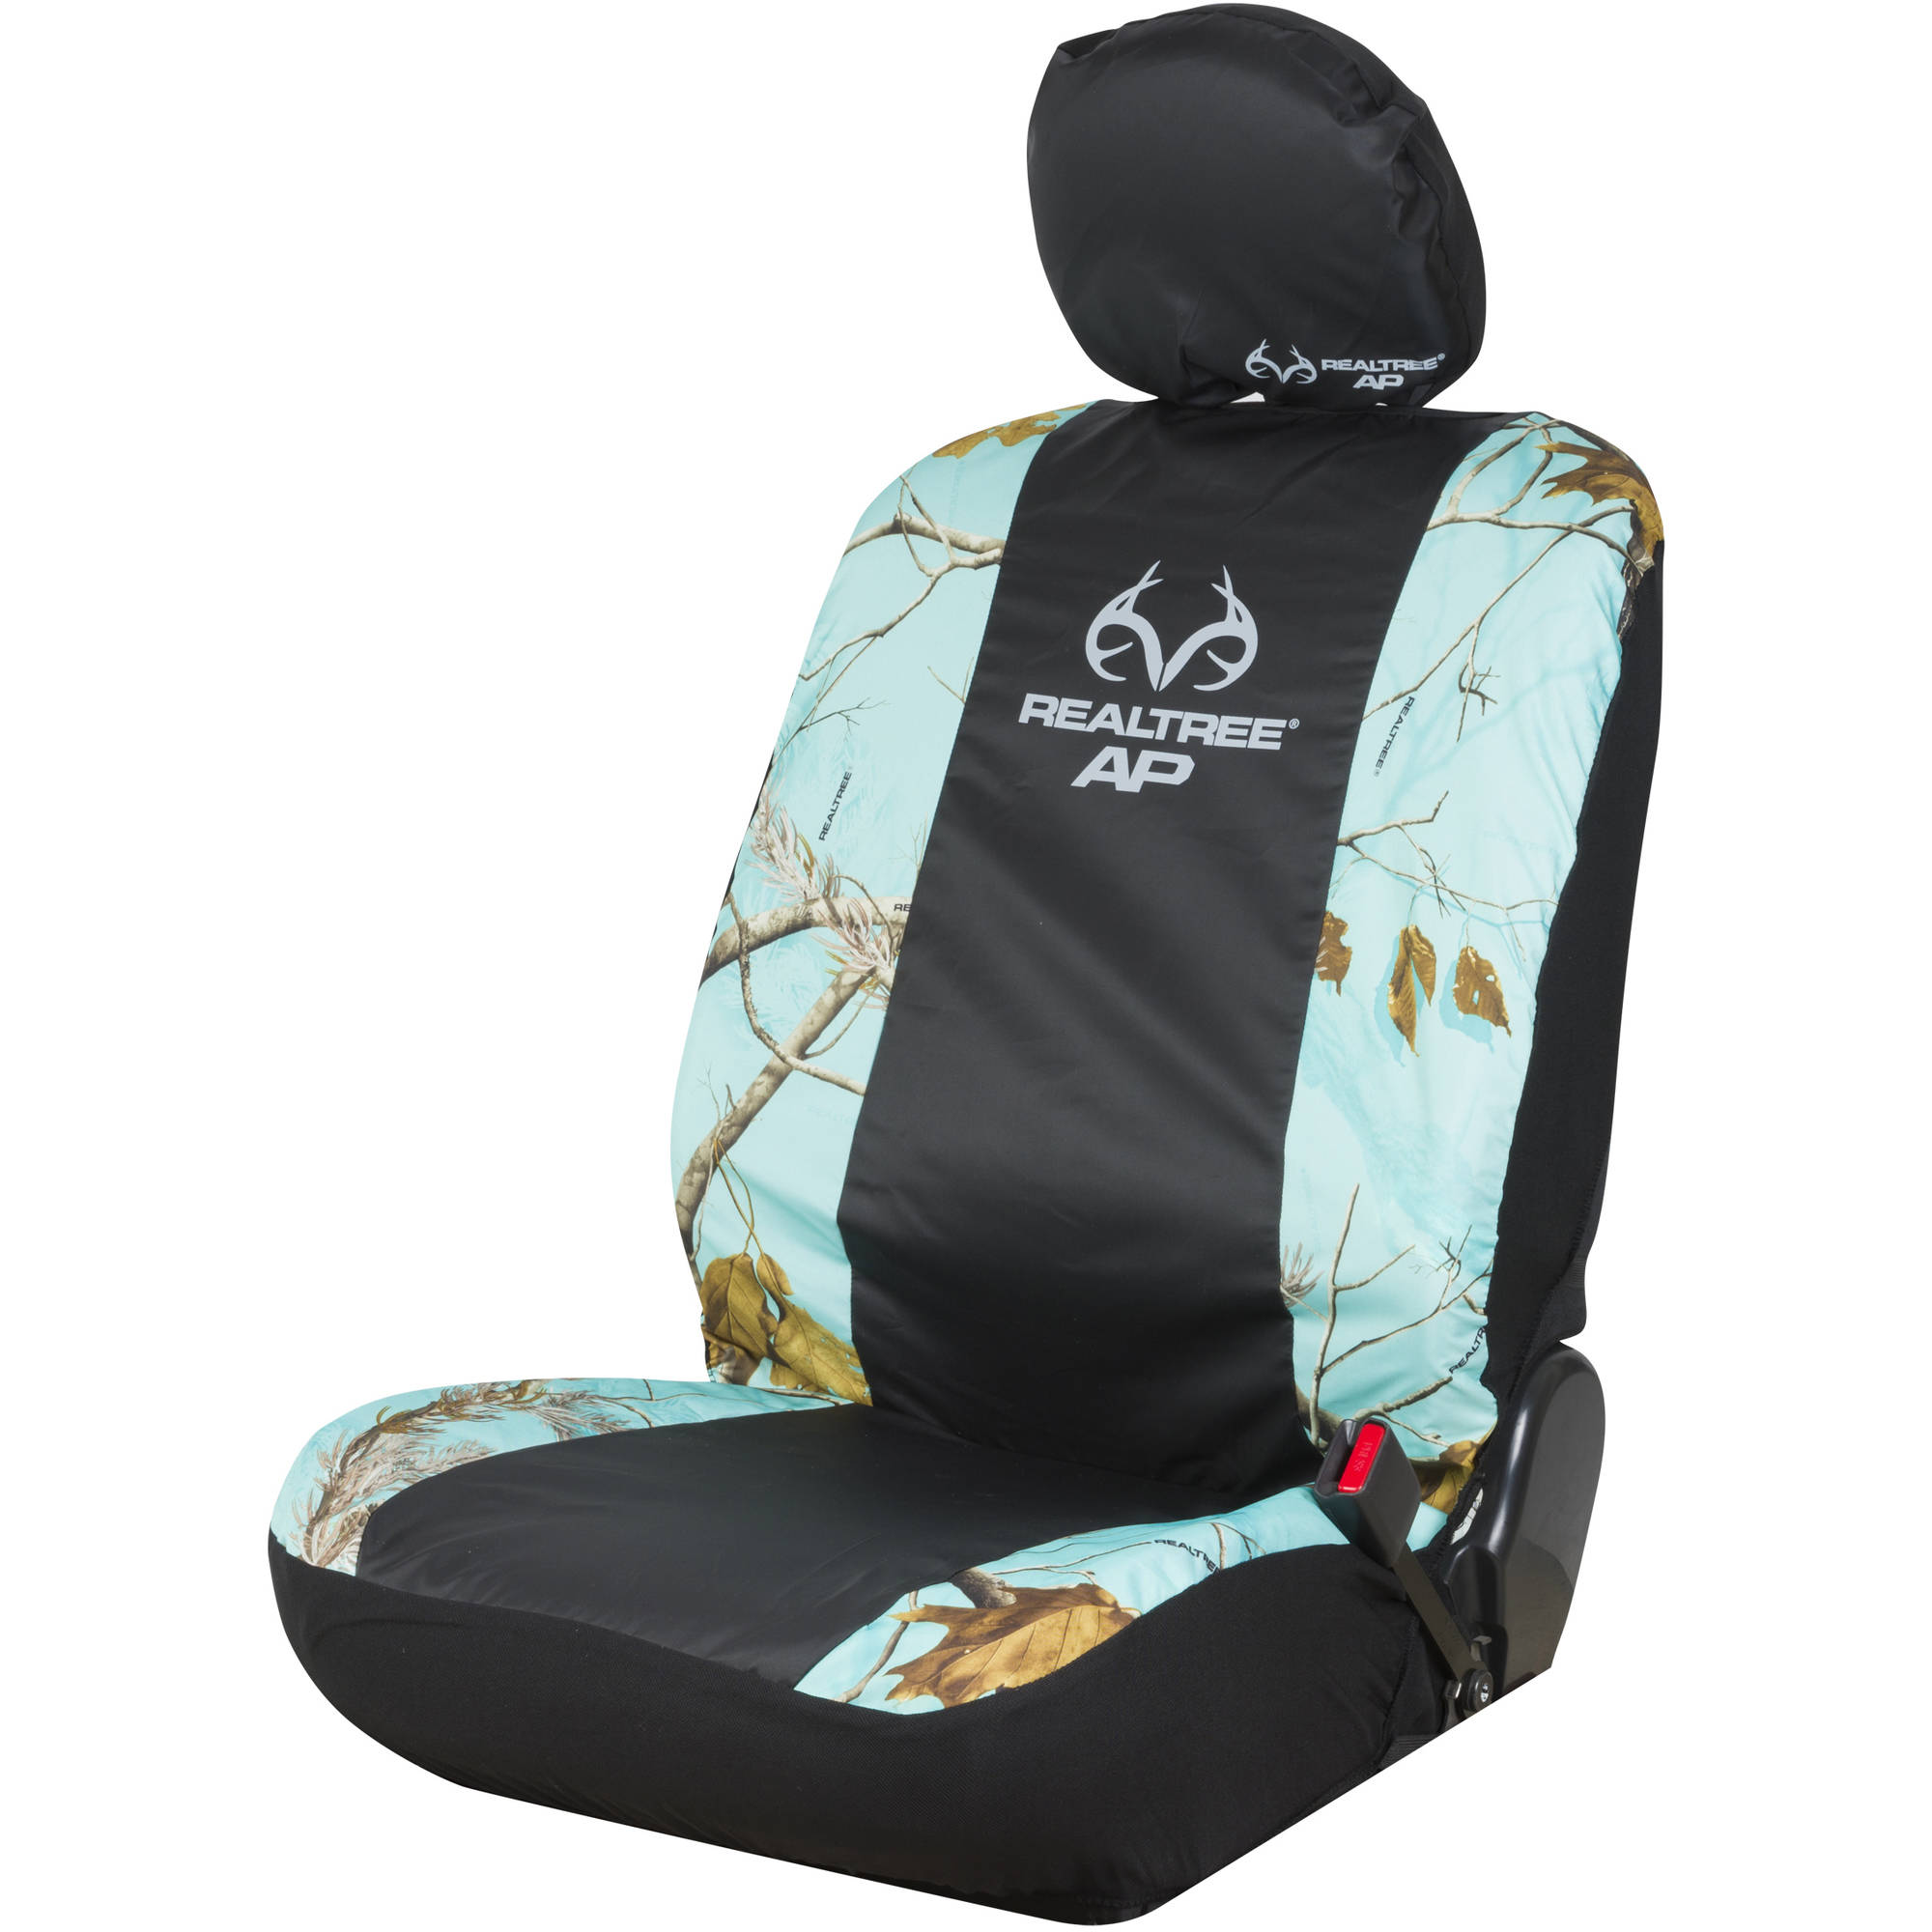 Realtree APC Mint Camo Low Back Seat Cover